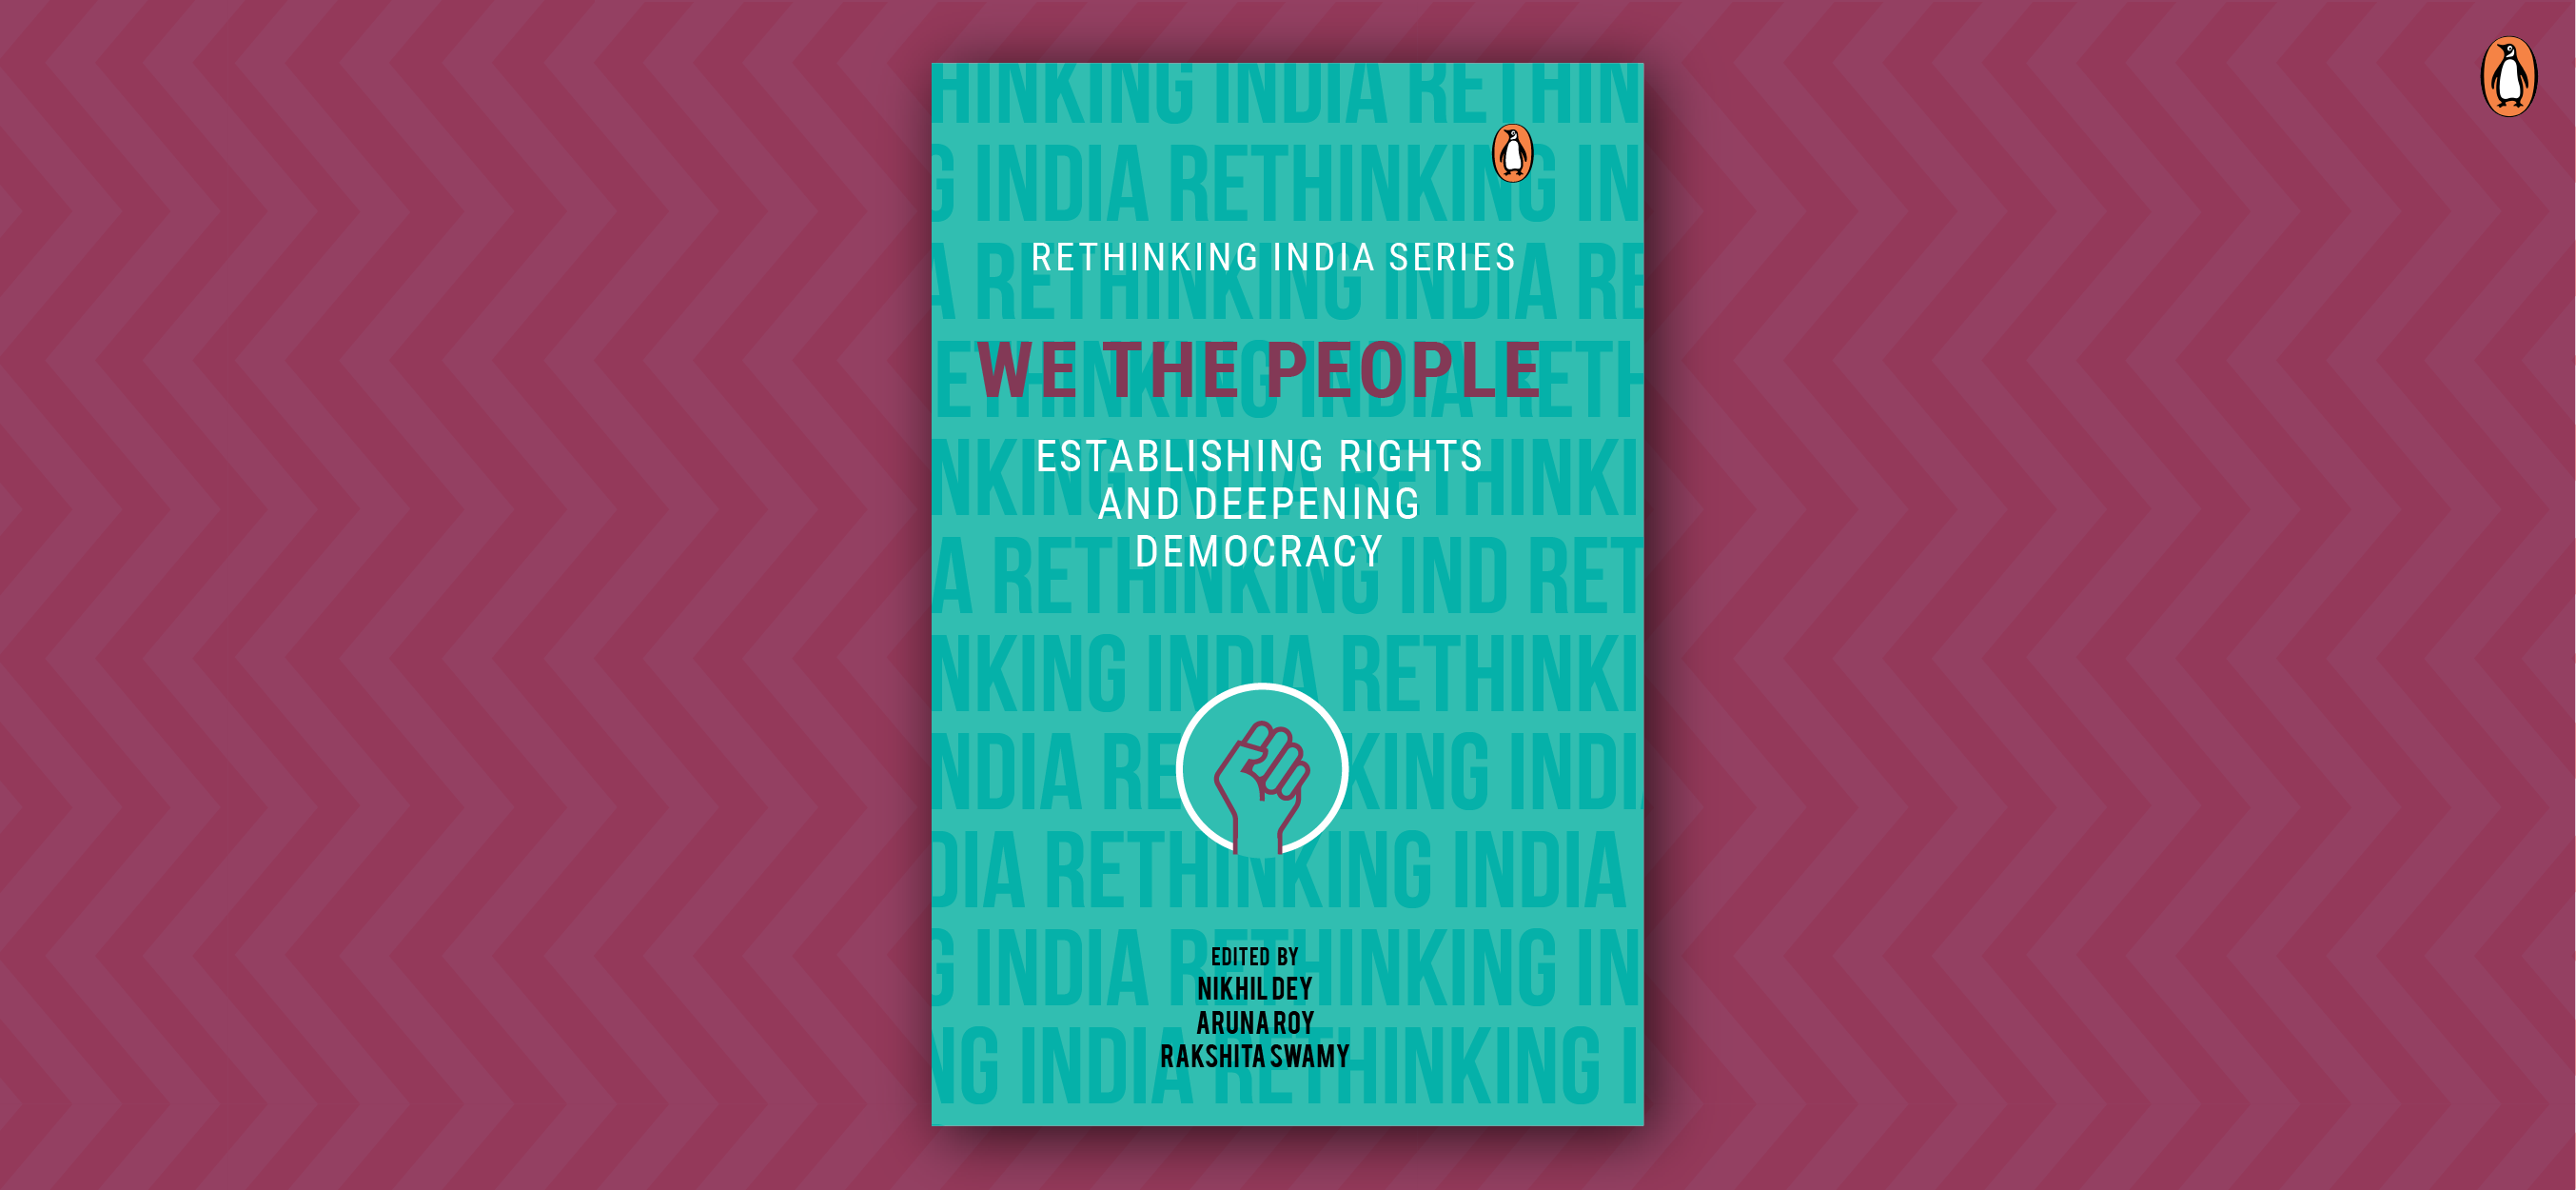 We The People: establishing rights and deepening democracy